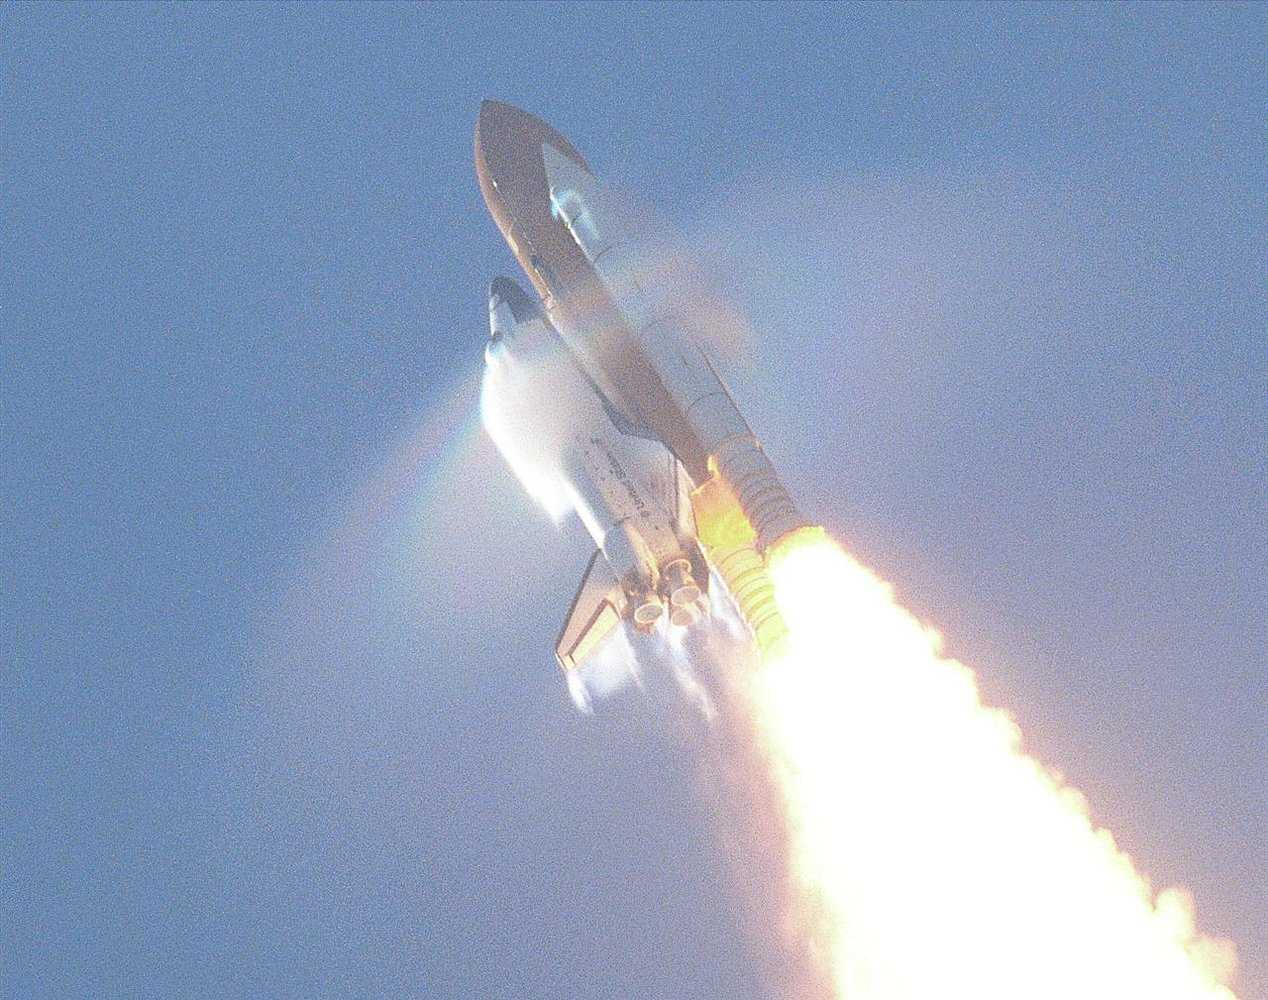 Watch a Rocket's Sound Waves Rip a Rainbow to Bits